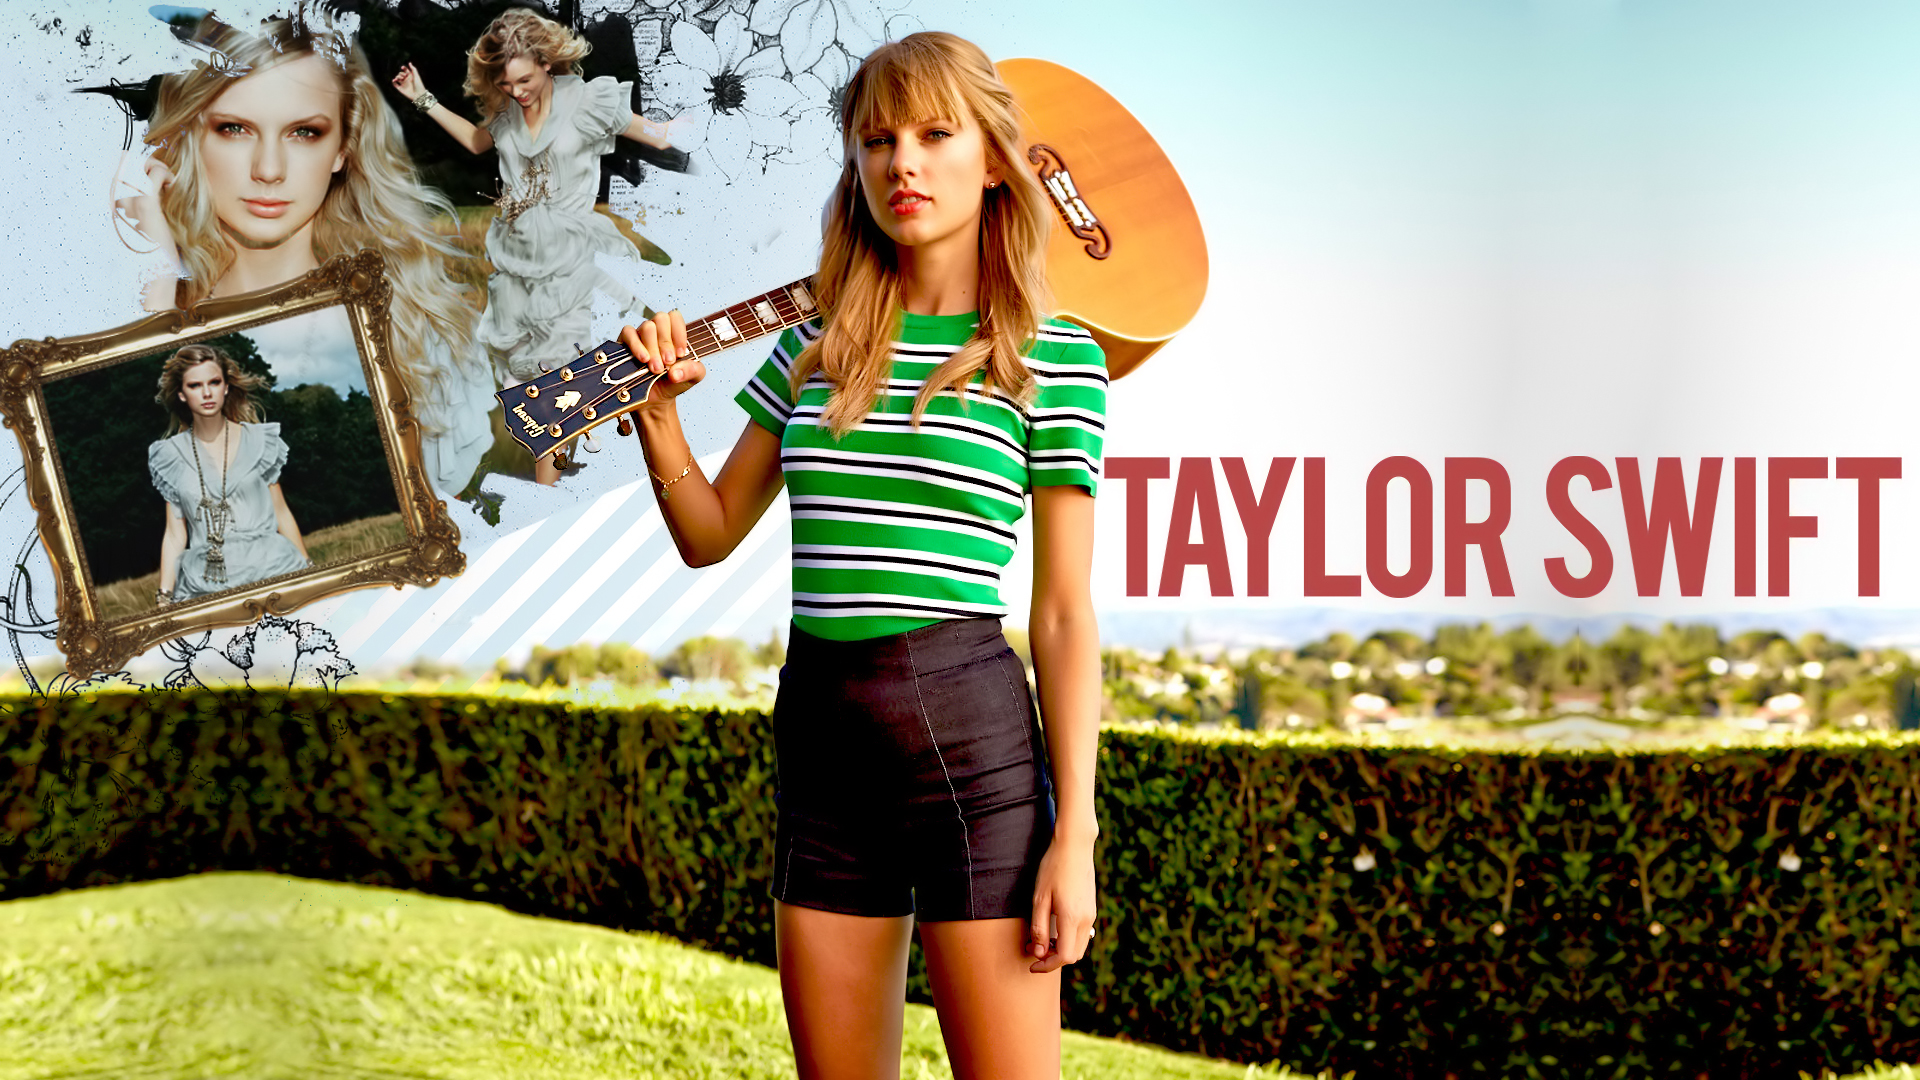 Taylor swift garden01 by funkycop999 on deviantart for Taylor swift coffee shop